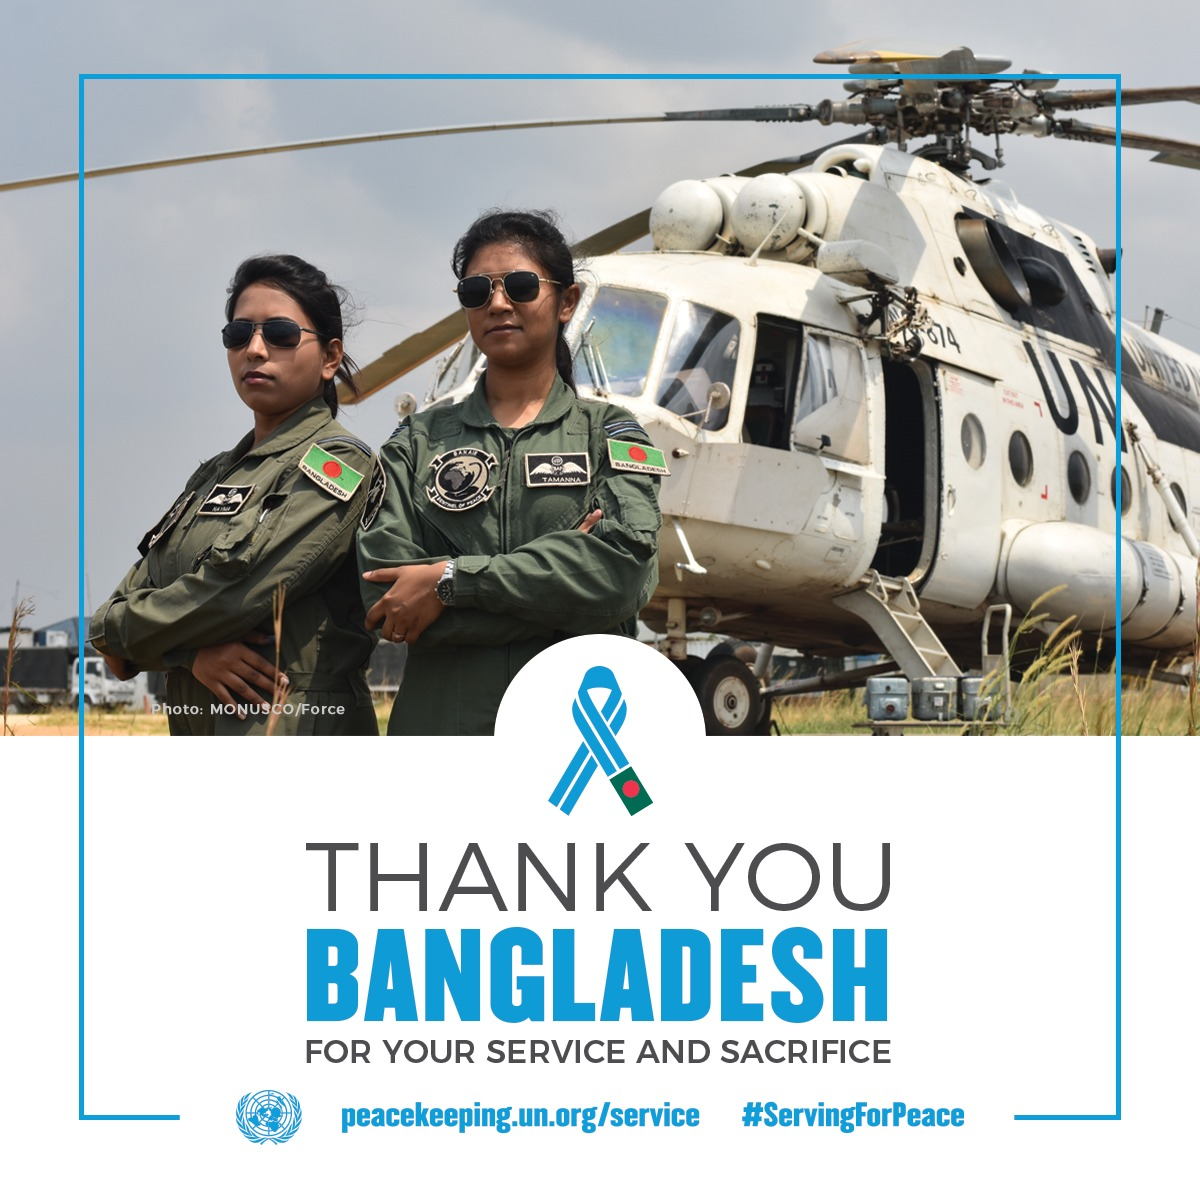 Pioneer female pilots deployed by MONUSCO's bangladeshi Aviation unit (BANAIR) in Bunia. The two aviators are contributing their expertise in support of MONUSCO operations aimed at bringing peace and stability in the DRC